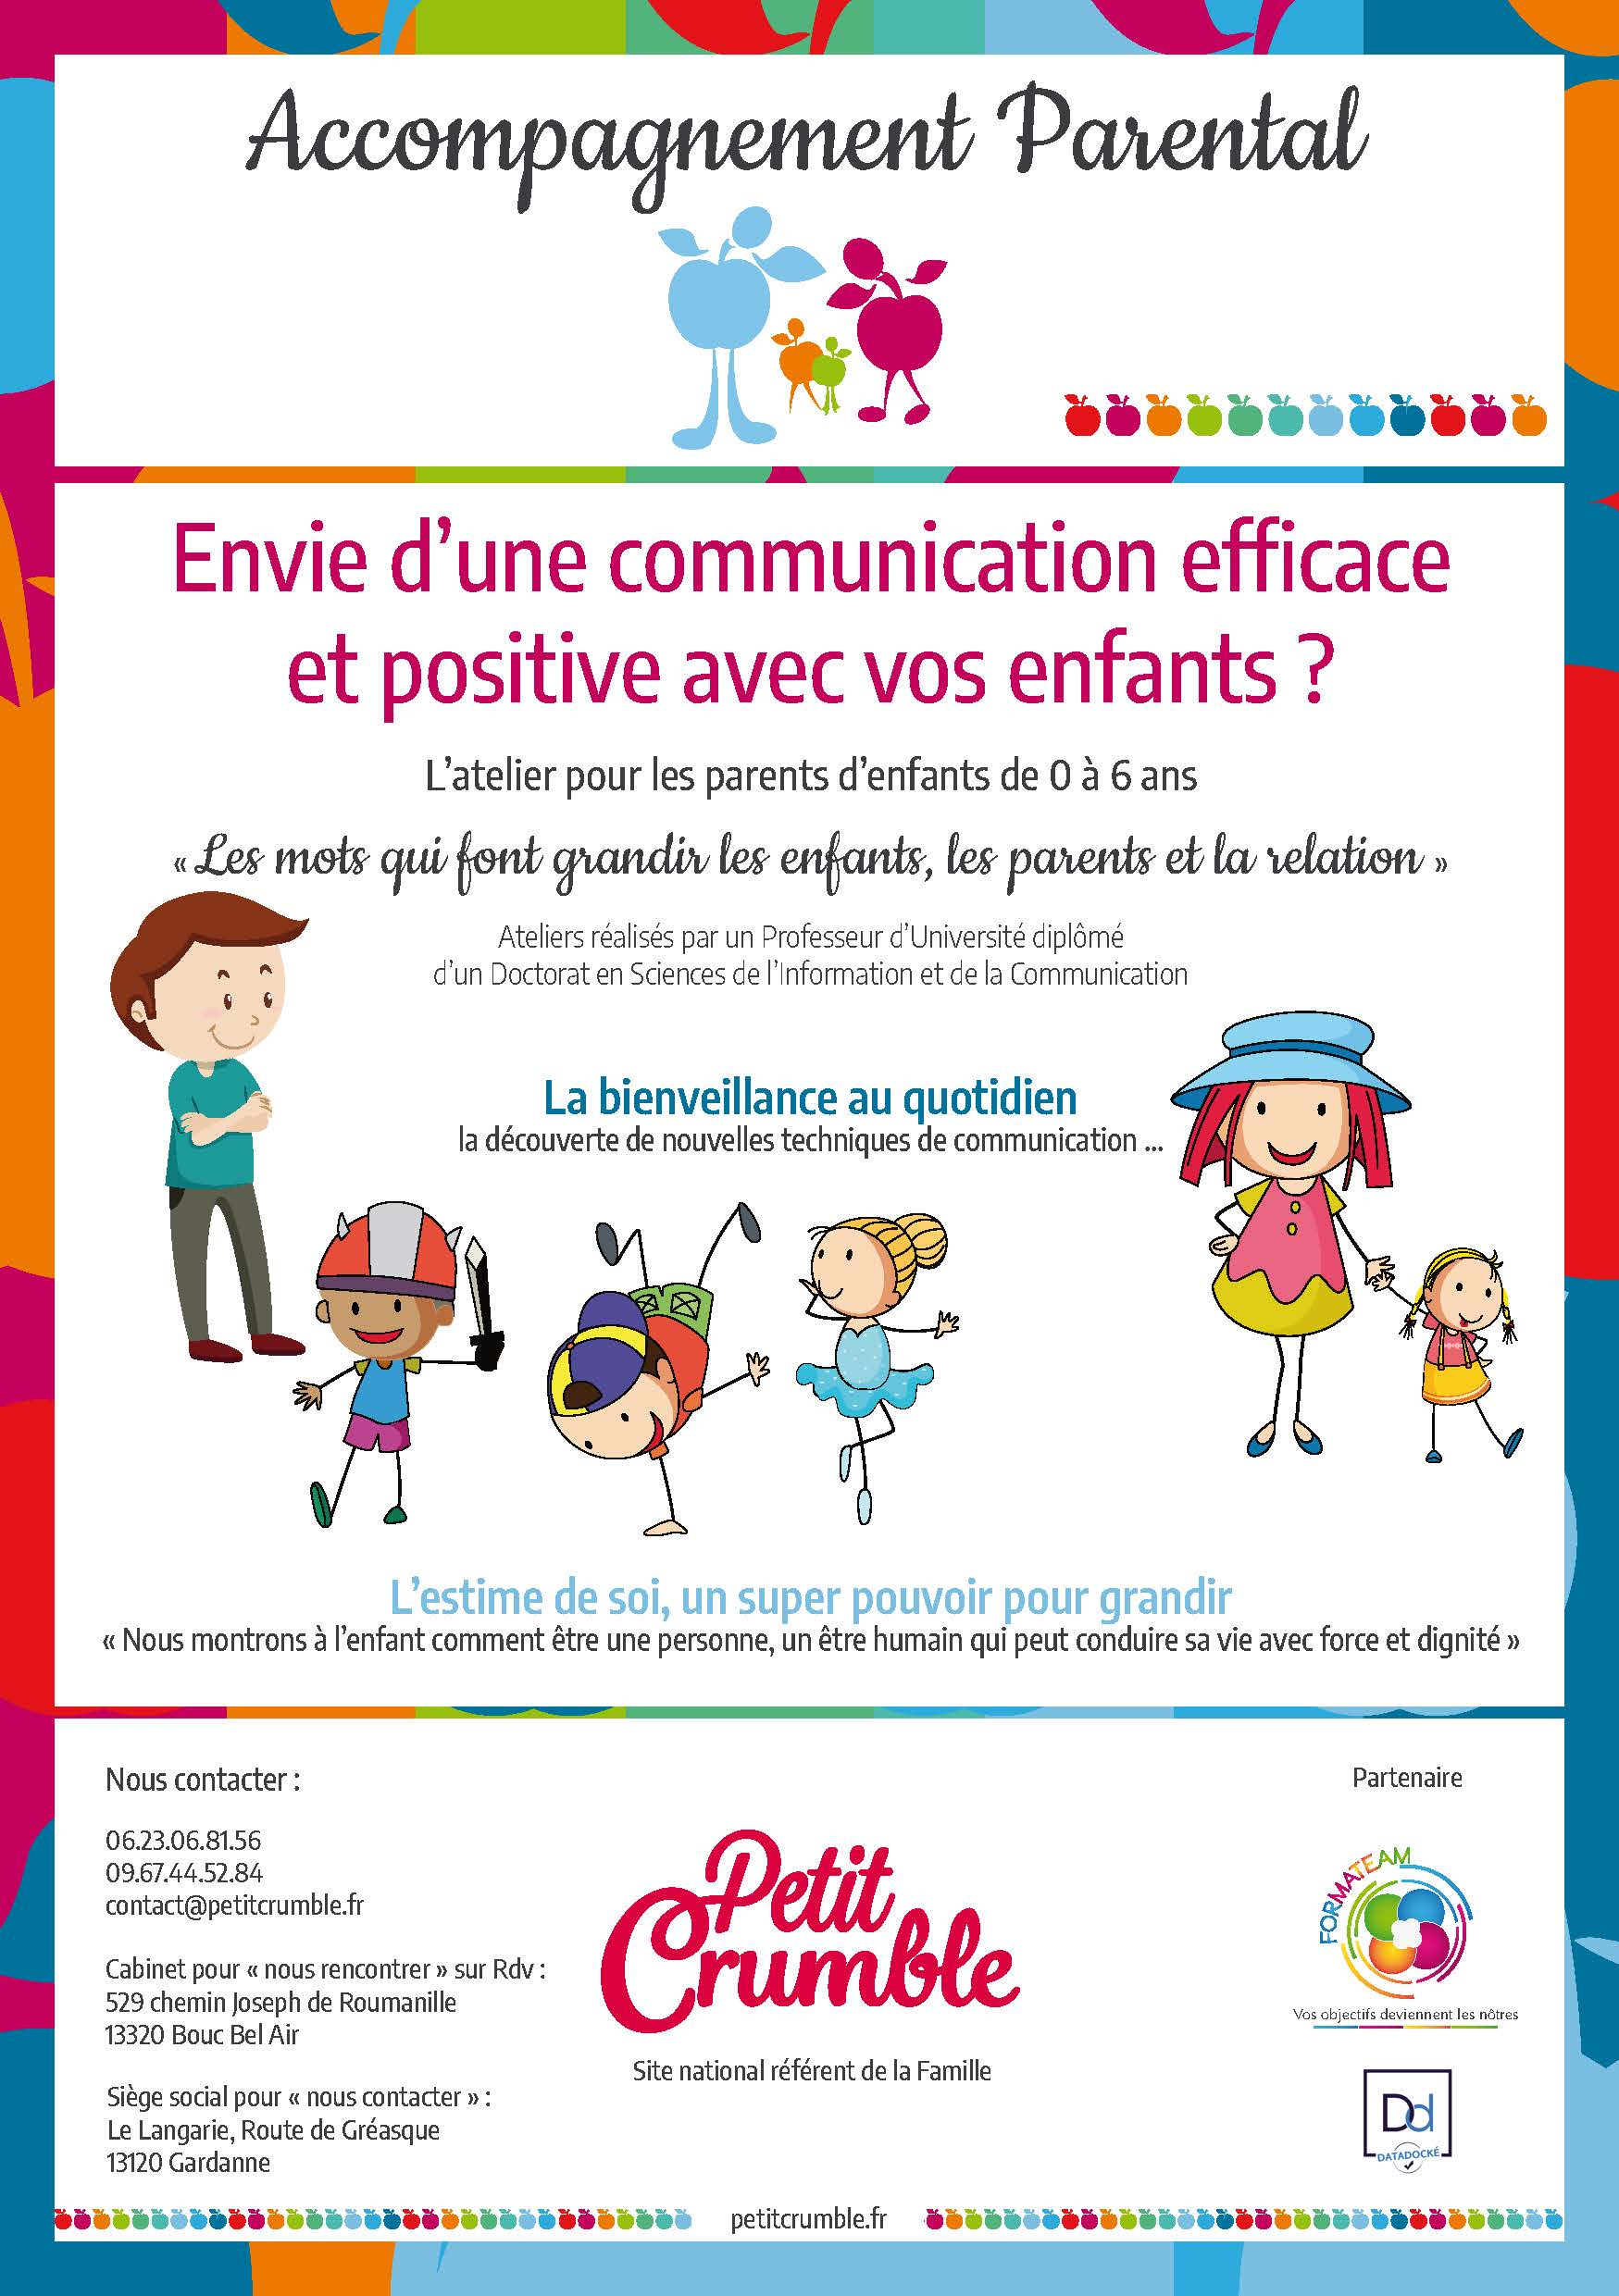 ACCOMPAGNEMENT-PARENTAL-0-6-1-min